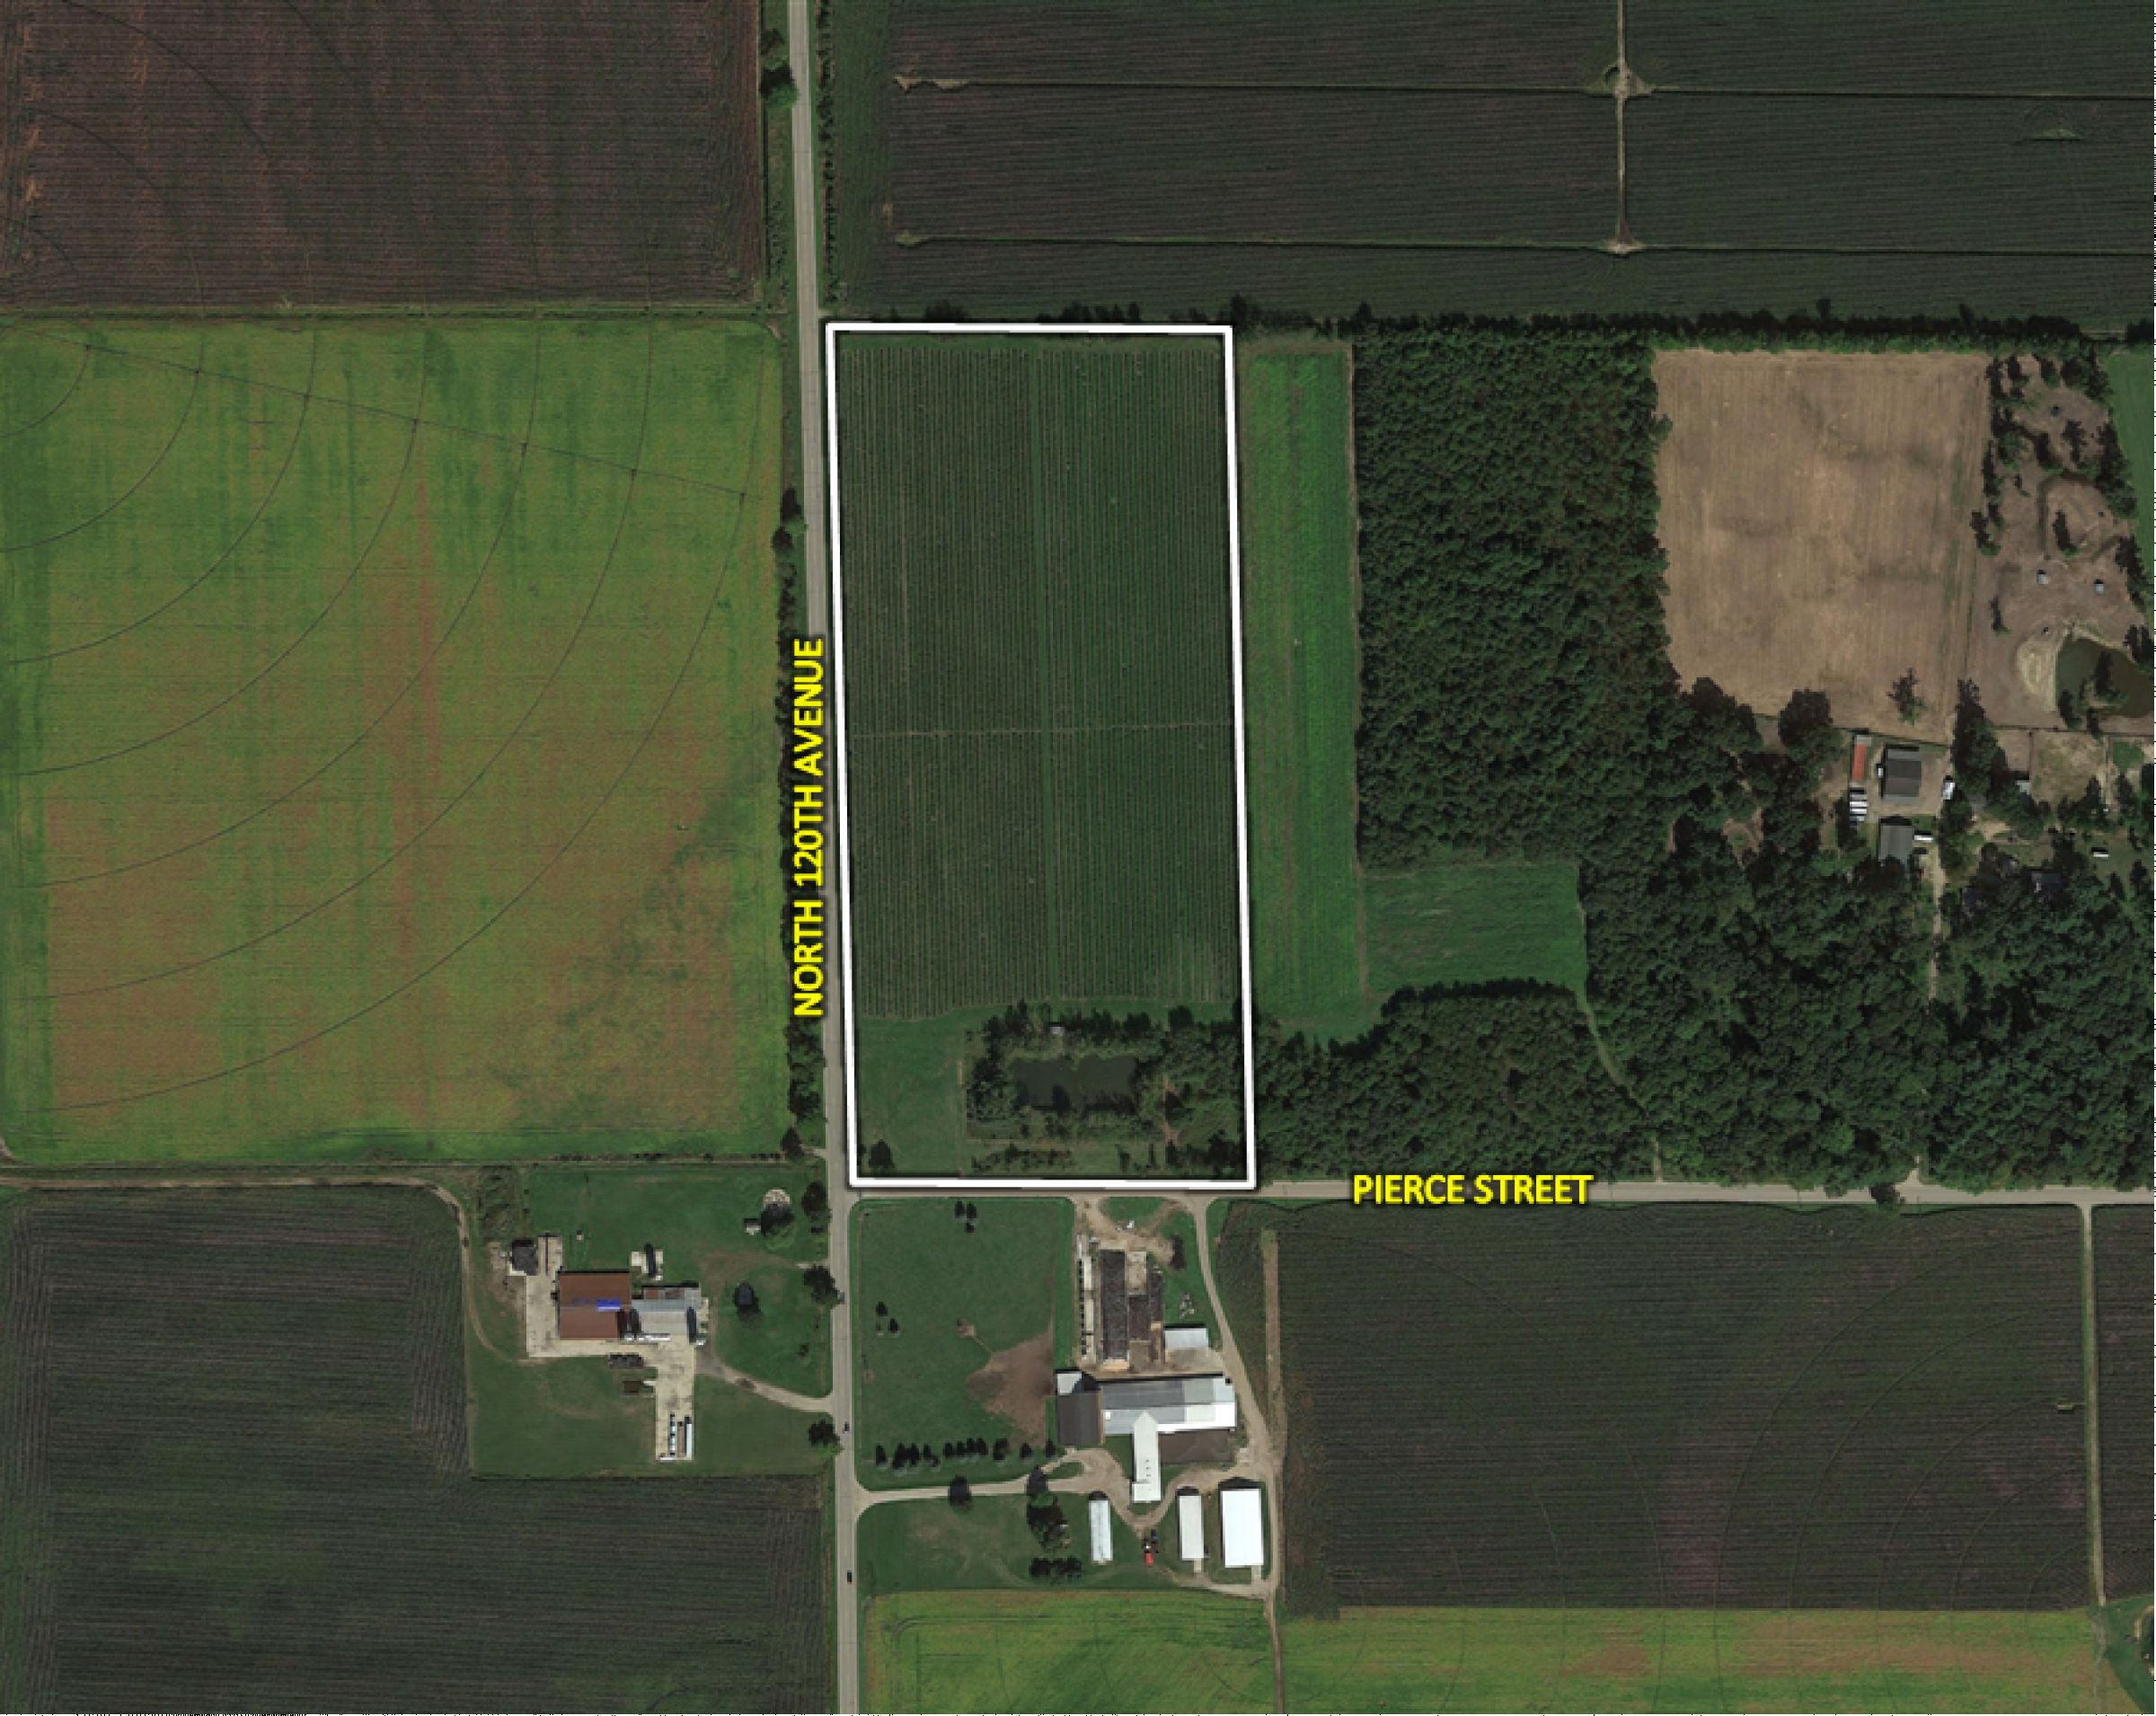 6-120th-pierce-farm-holland-49422-0-2020-12-22-230623.png